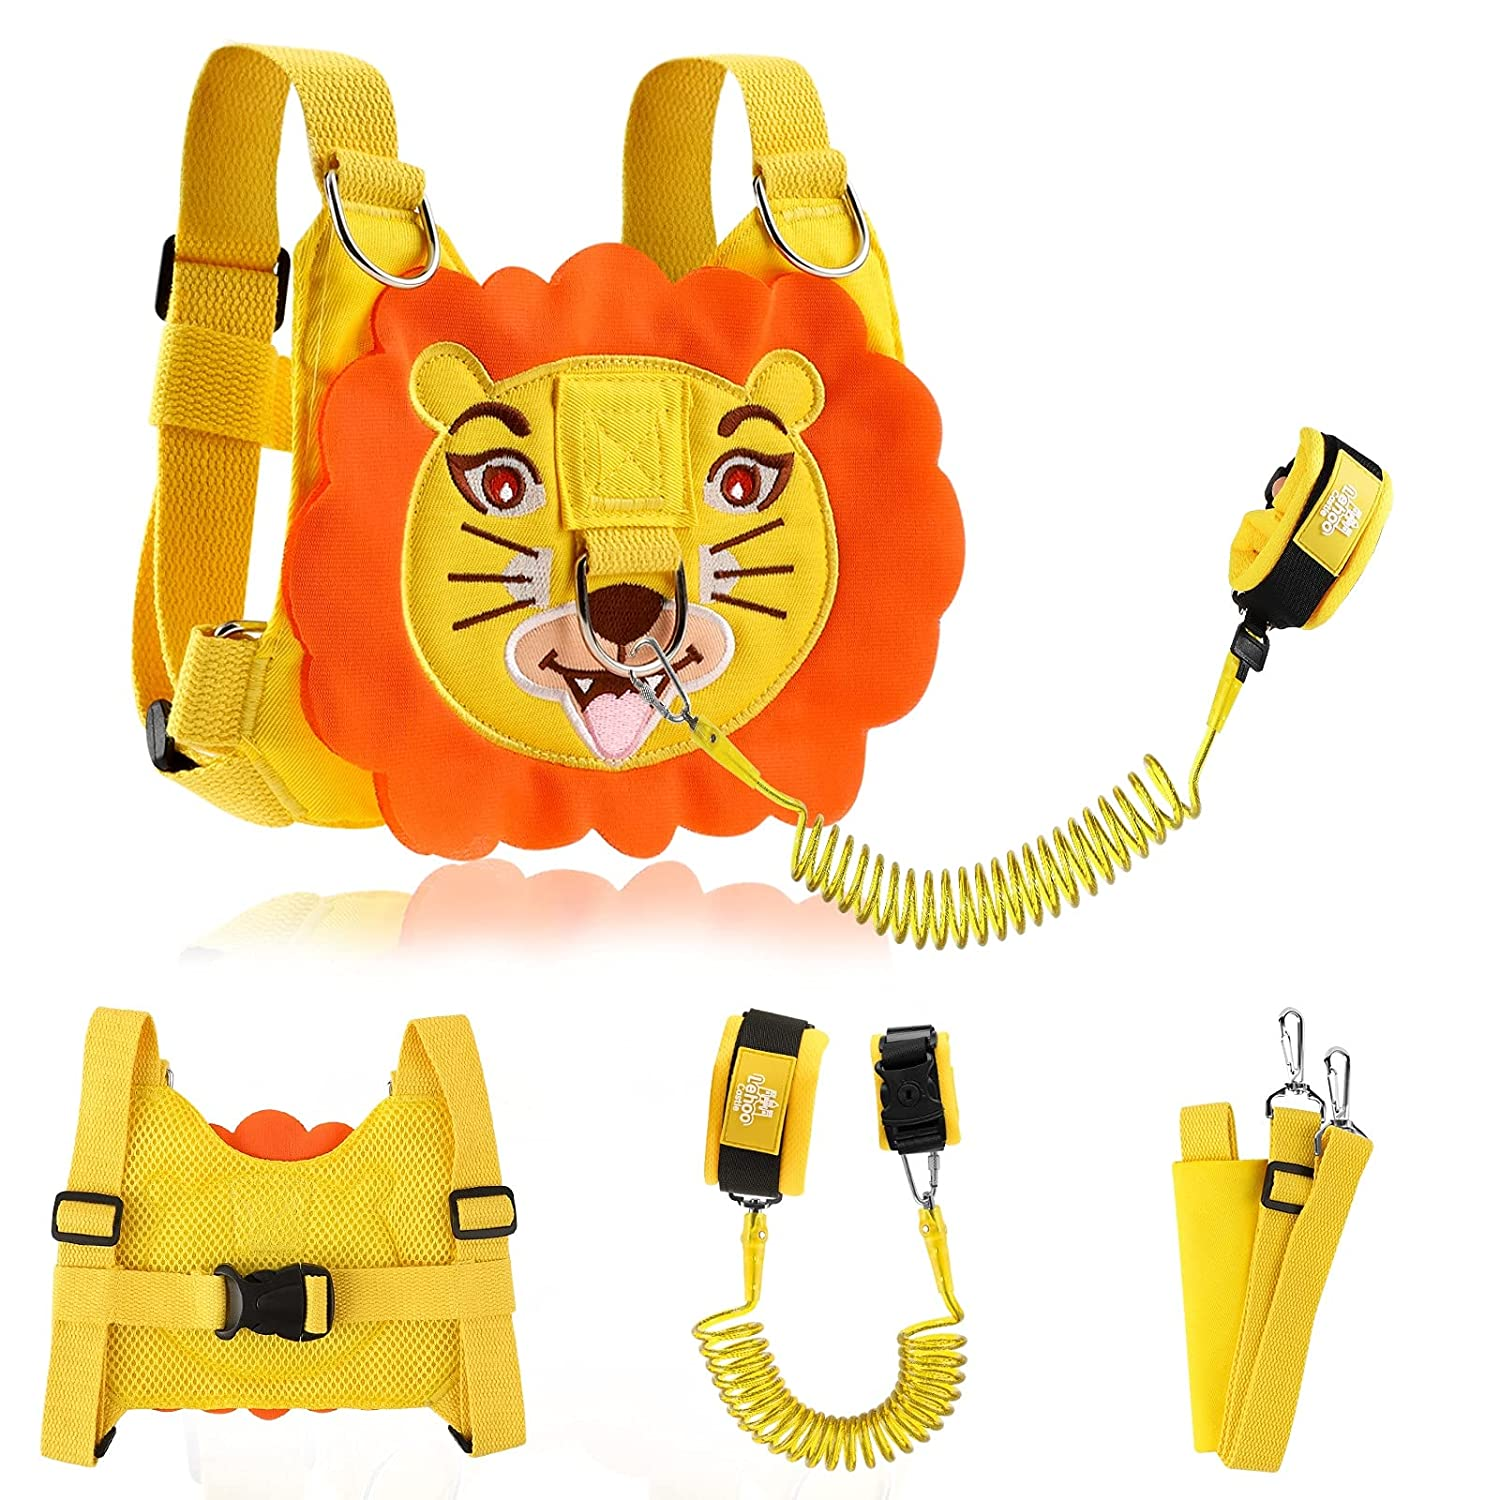 Lehoo Castle Toddler Leashes for Walking Lion, 2 in 1 Kids Safety Harness + Anti Lost Wrist Link with Lock, Baby Leash Harness for Walking Boys and Girls (Yellow)